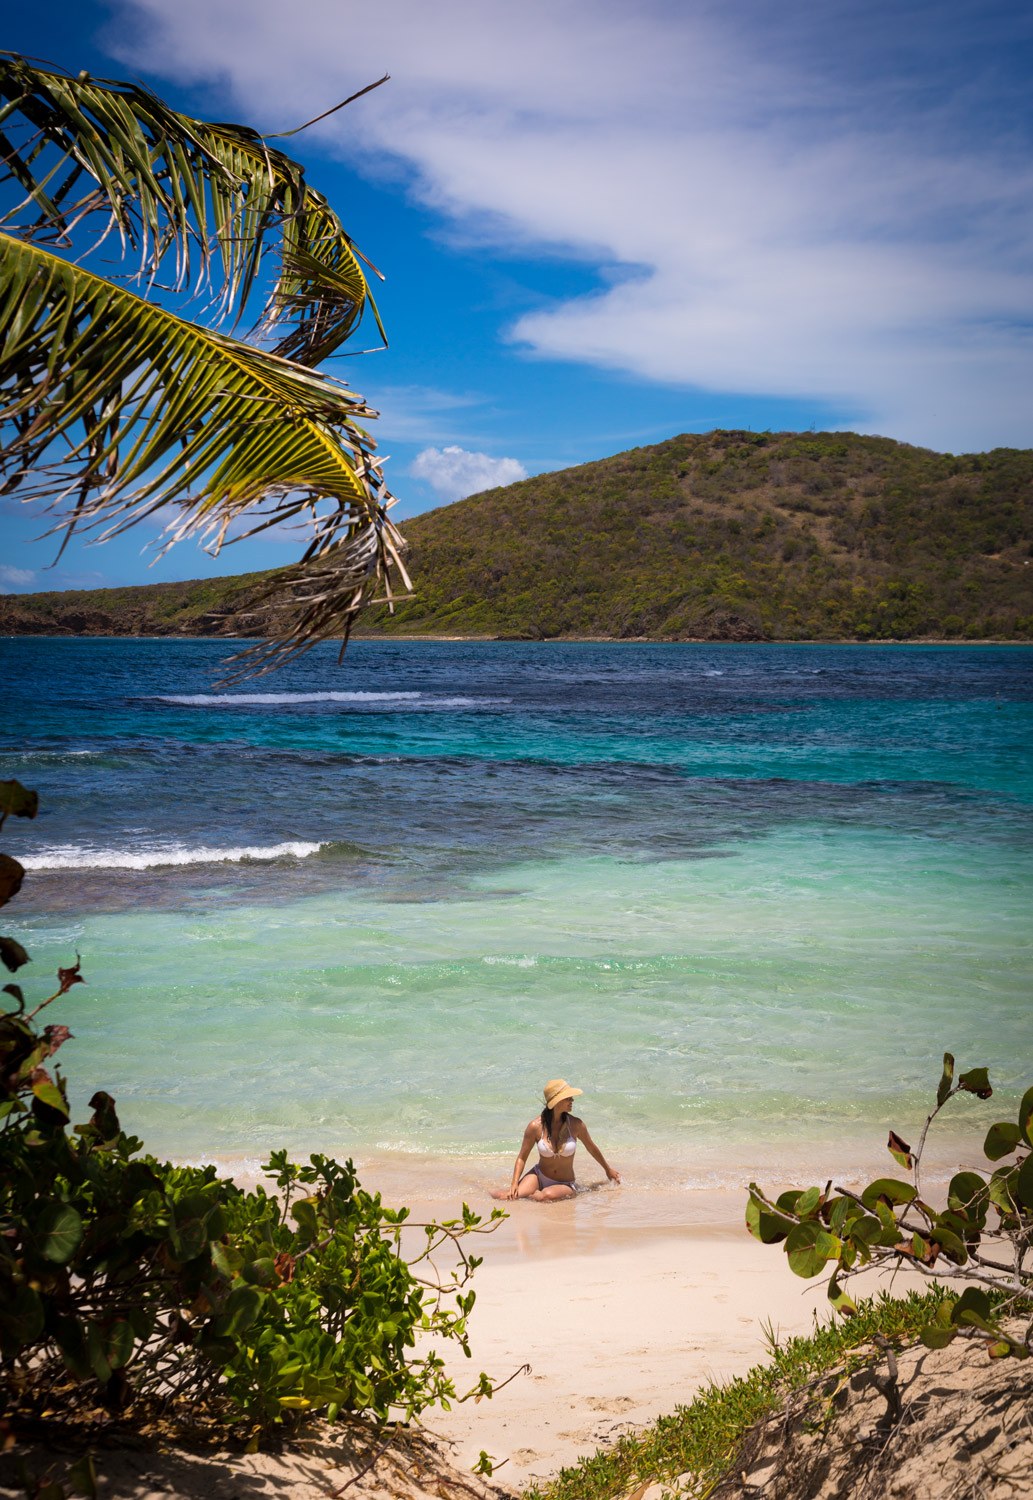 Playa Flamenco in the island of Culebra. Lifestyle